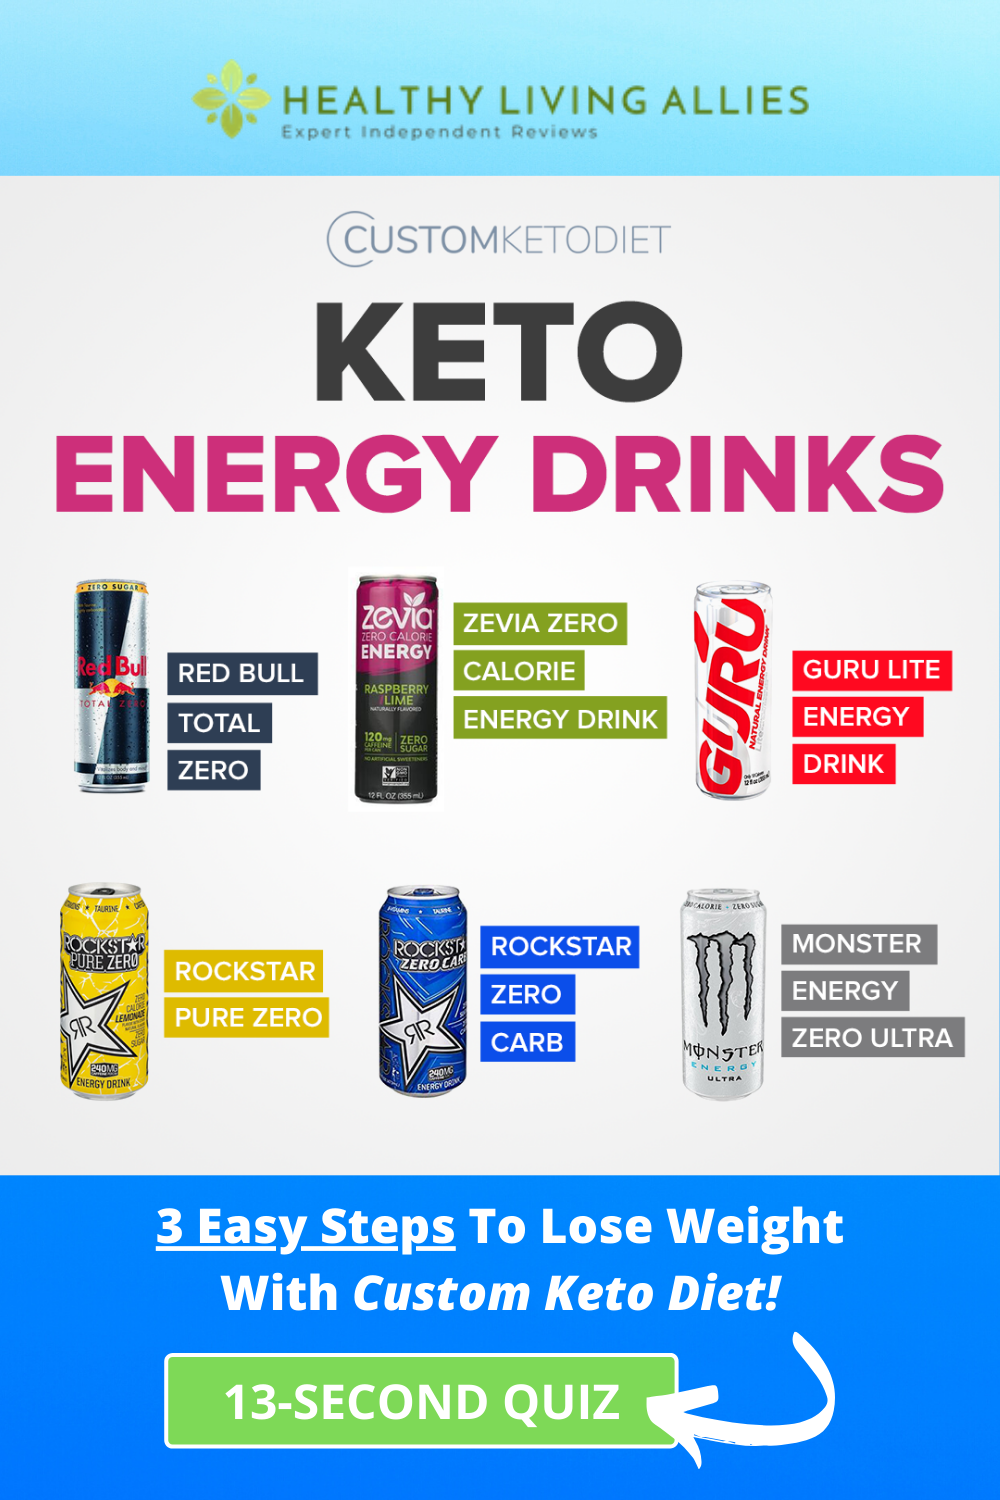 If you're missing out on your coffee fix, try these 6 Keto